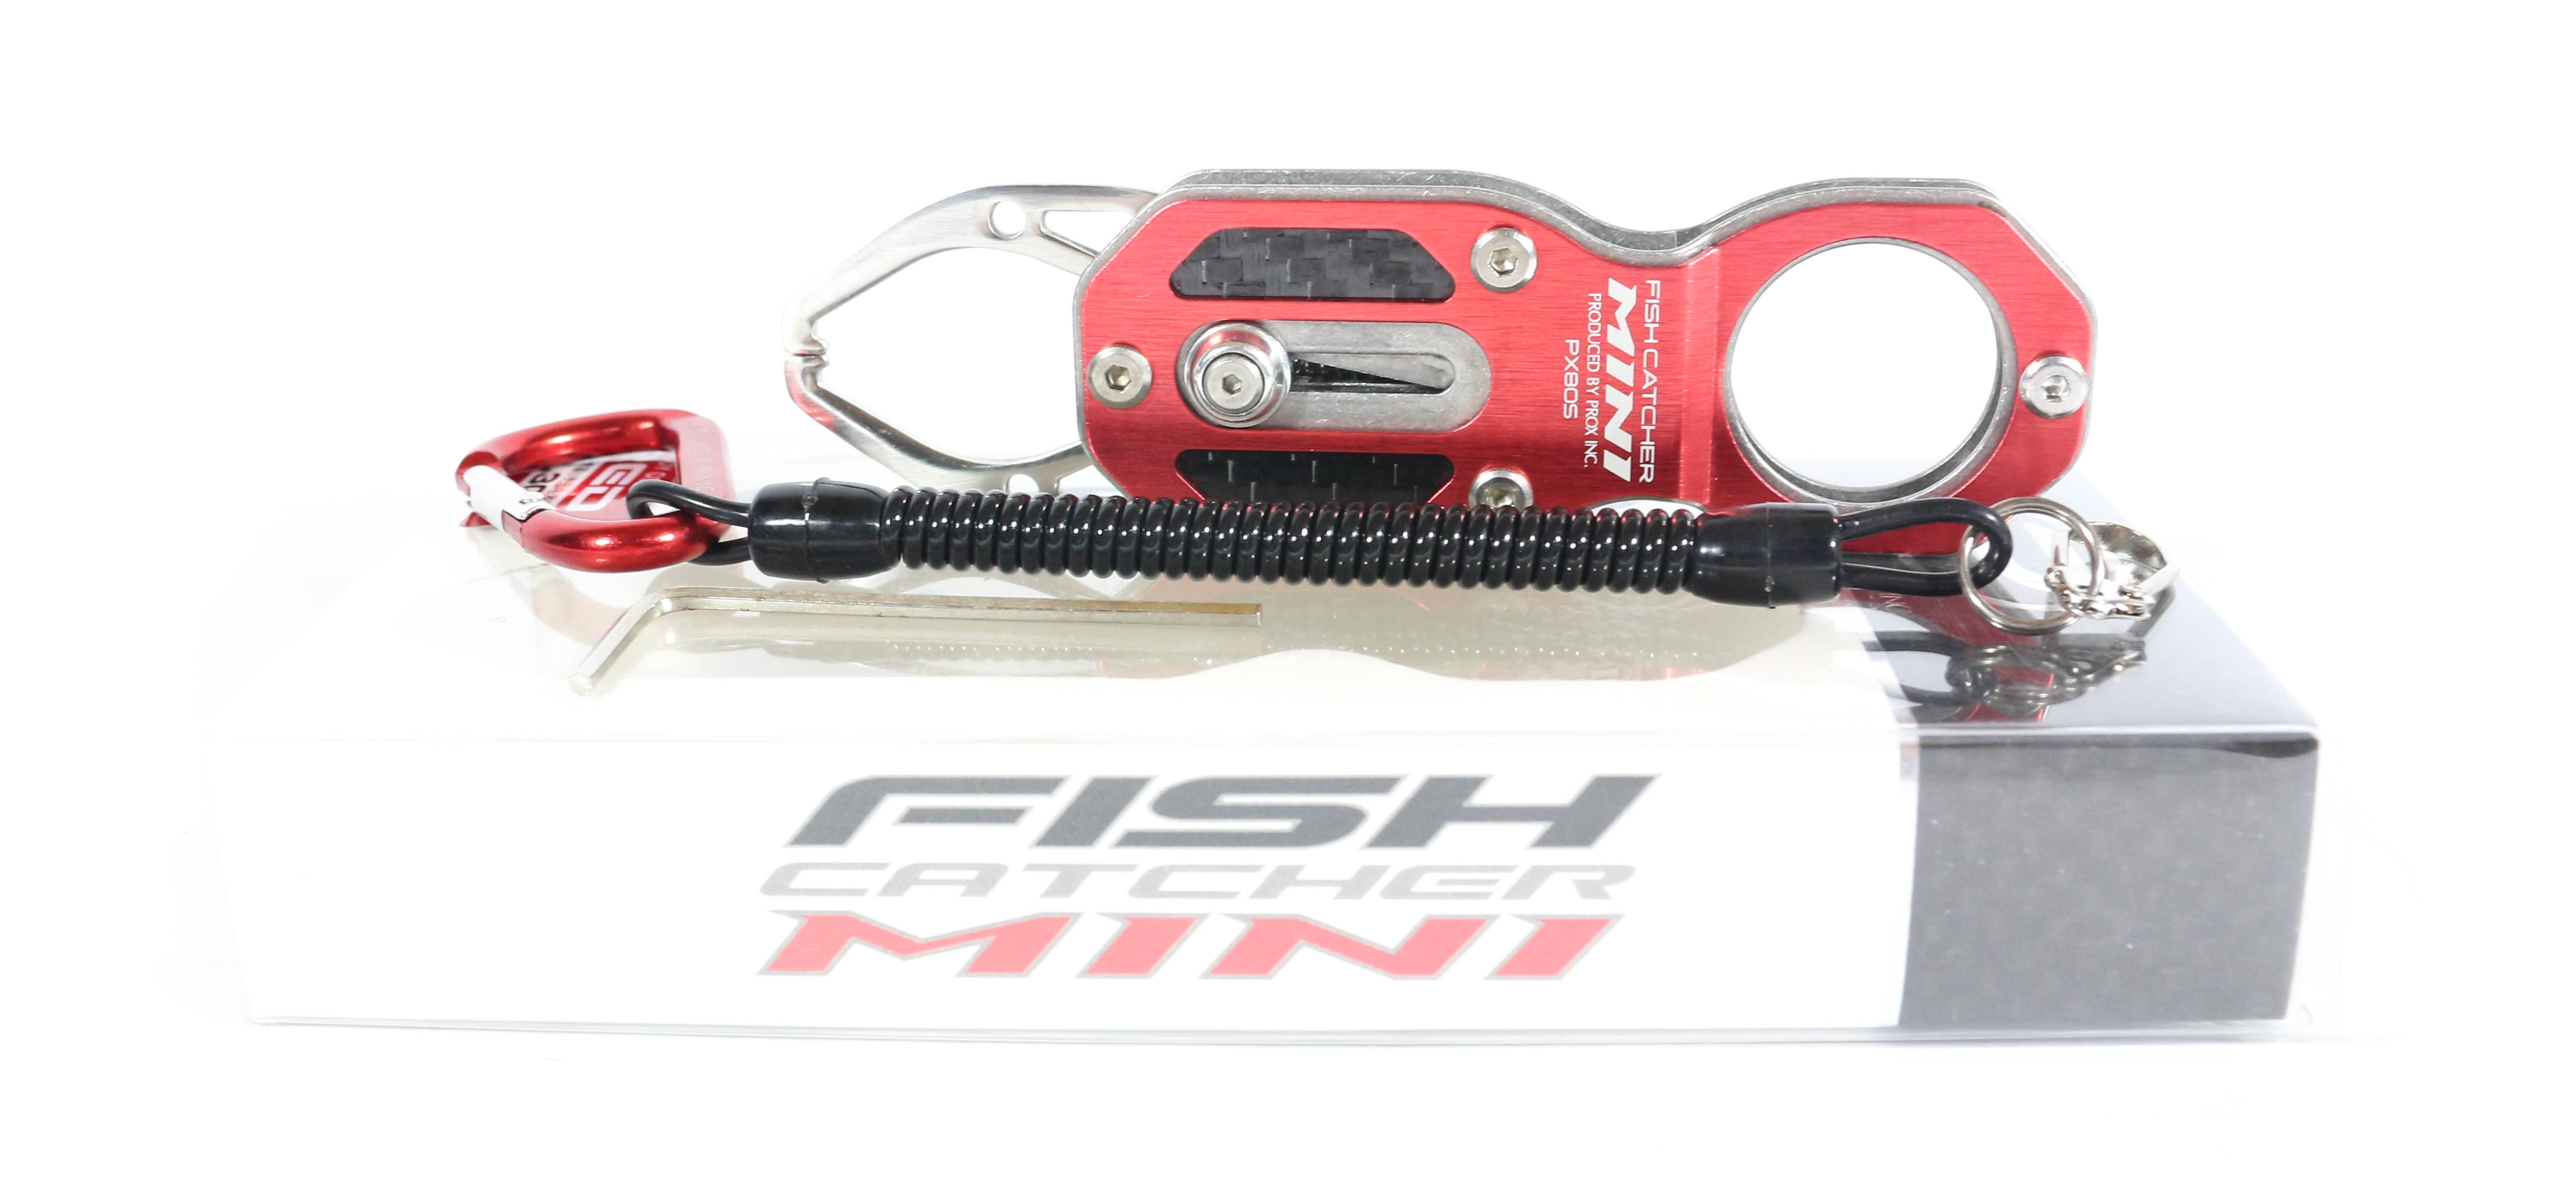 Prox PX 805R Fish Catcher Mini Fish Grip Handling Tool Red (4304)